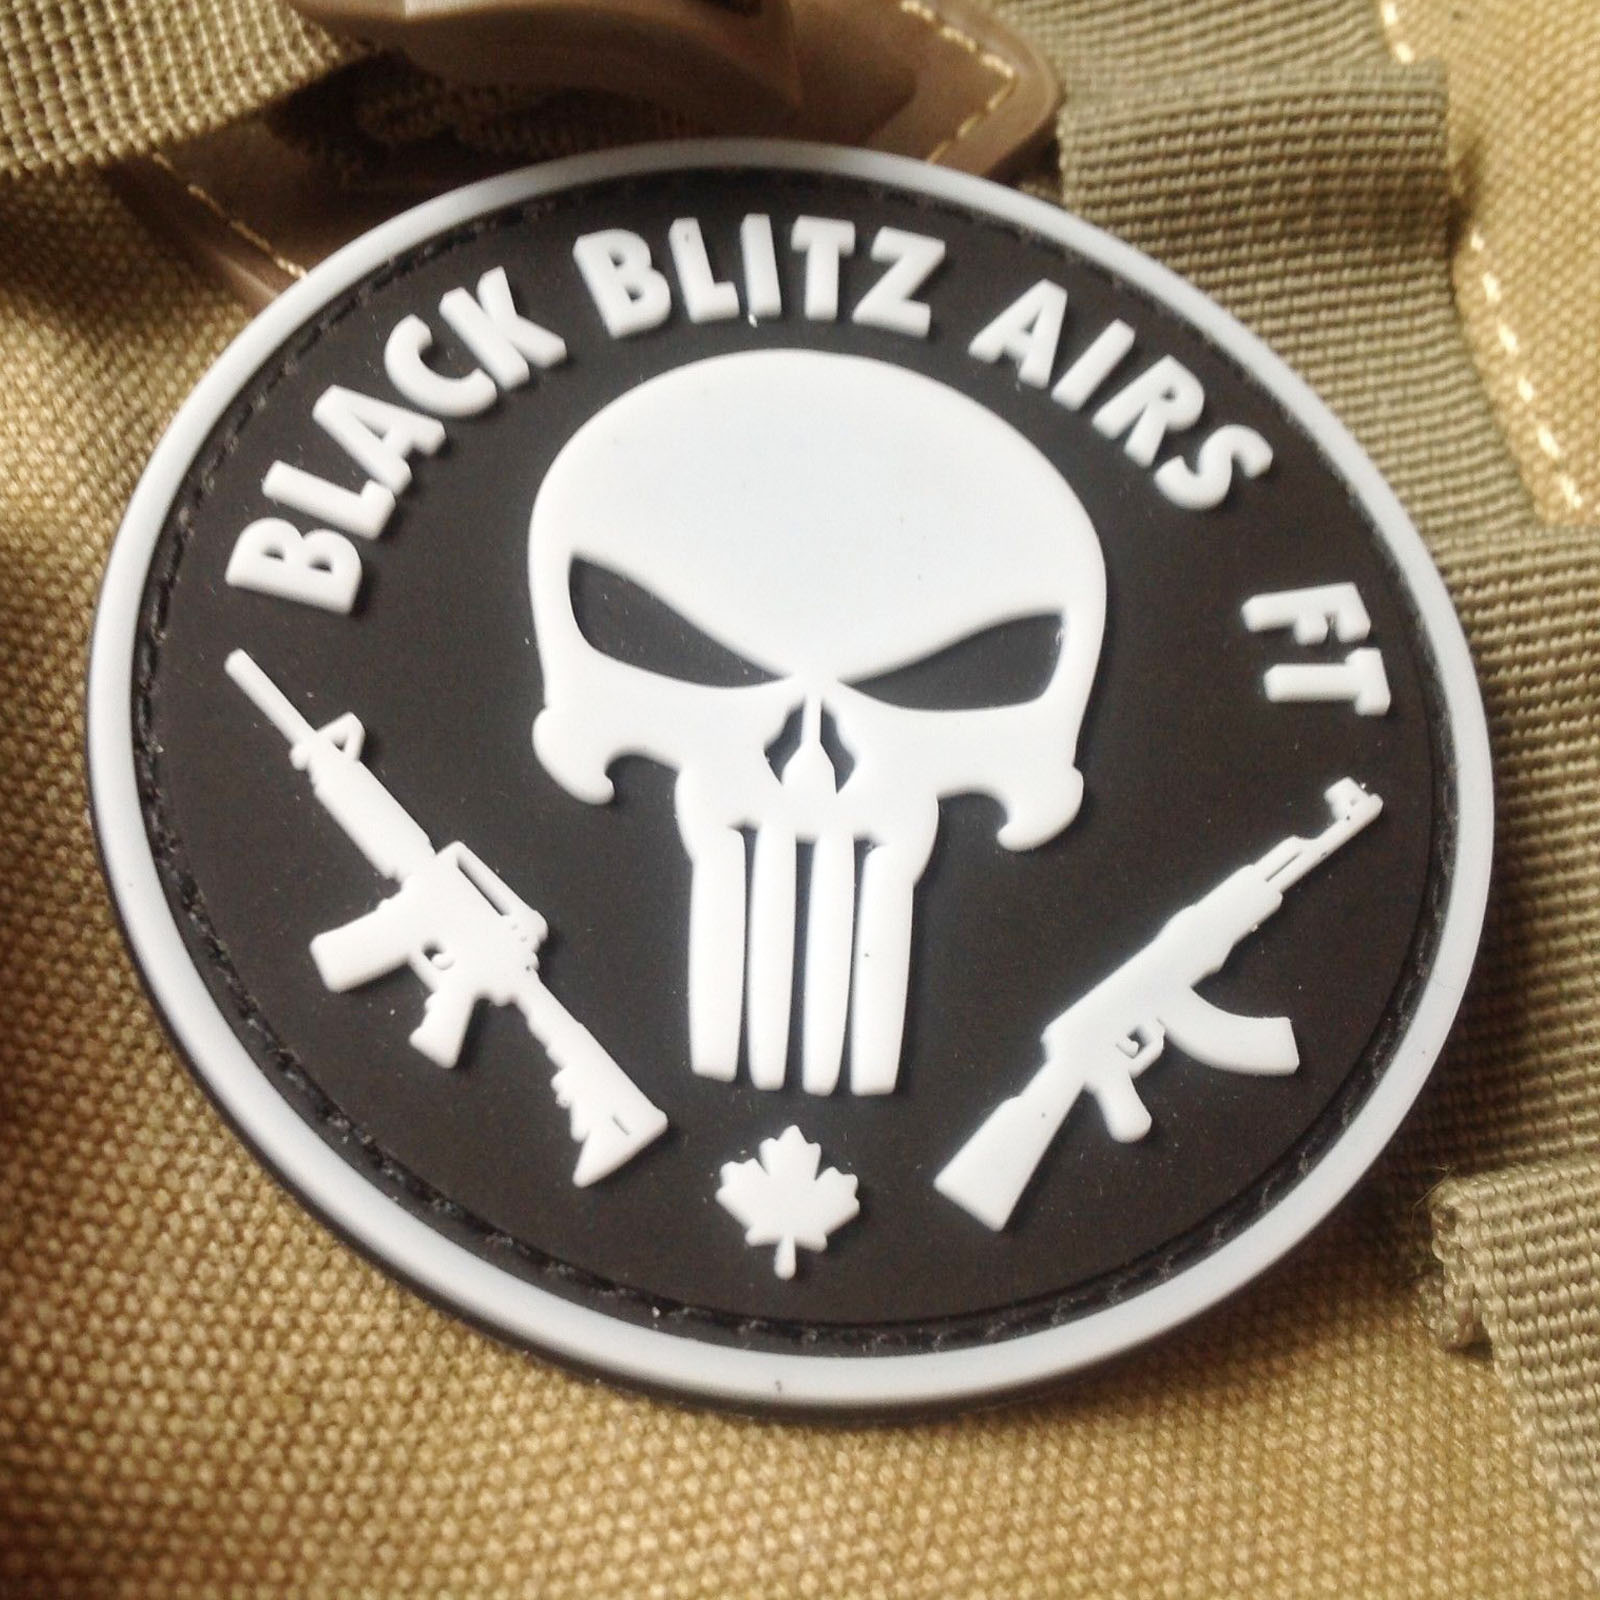 Punisher double gun tde punisher pvc rubber velcro armband badge backpack stickers army fan patch stickers